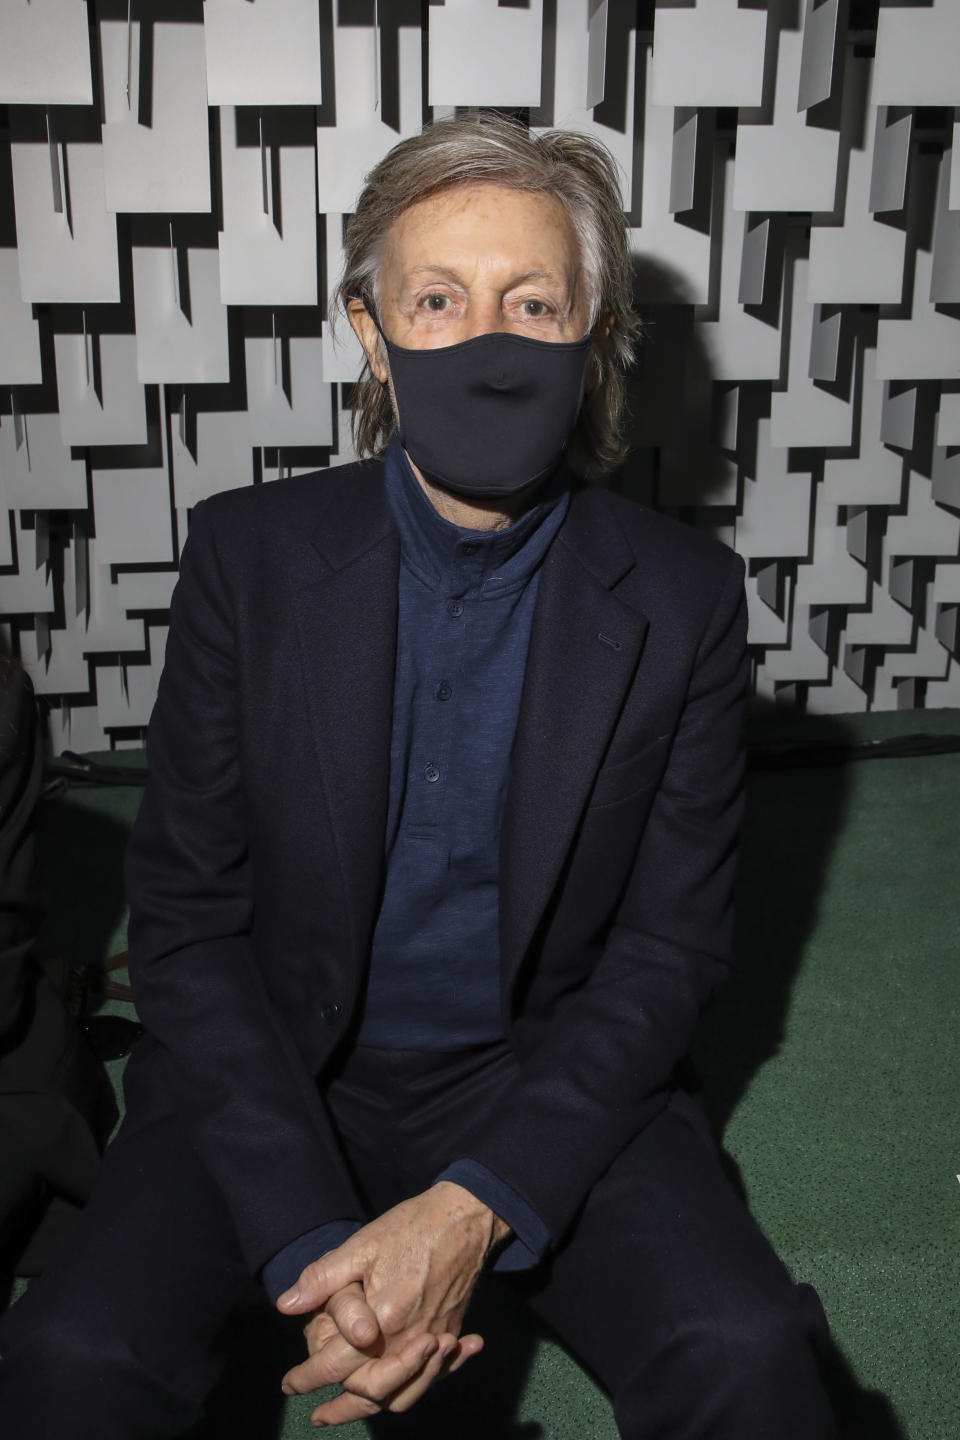 Paul McCartney attends the Stella McCartney Spring-Summer 2022 ready-to-wear fashion show presented in Paris, Monday, Oct. 4, 2021. (Photo by Vianney Le Caer/Invision/AP)